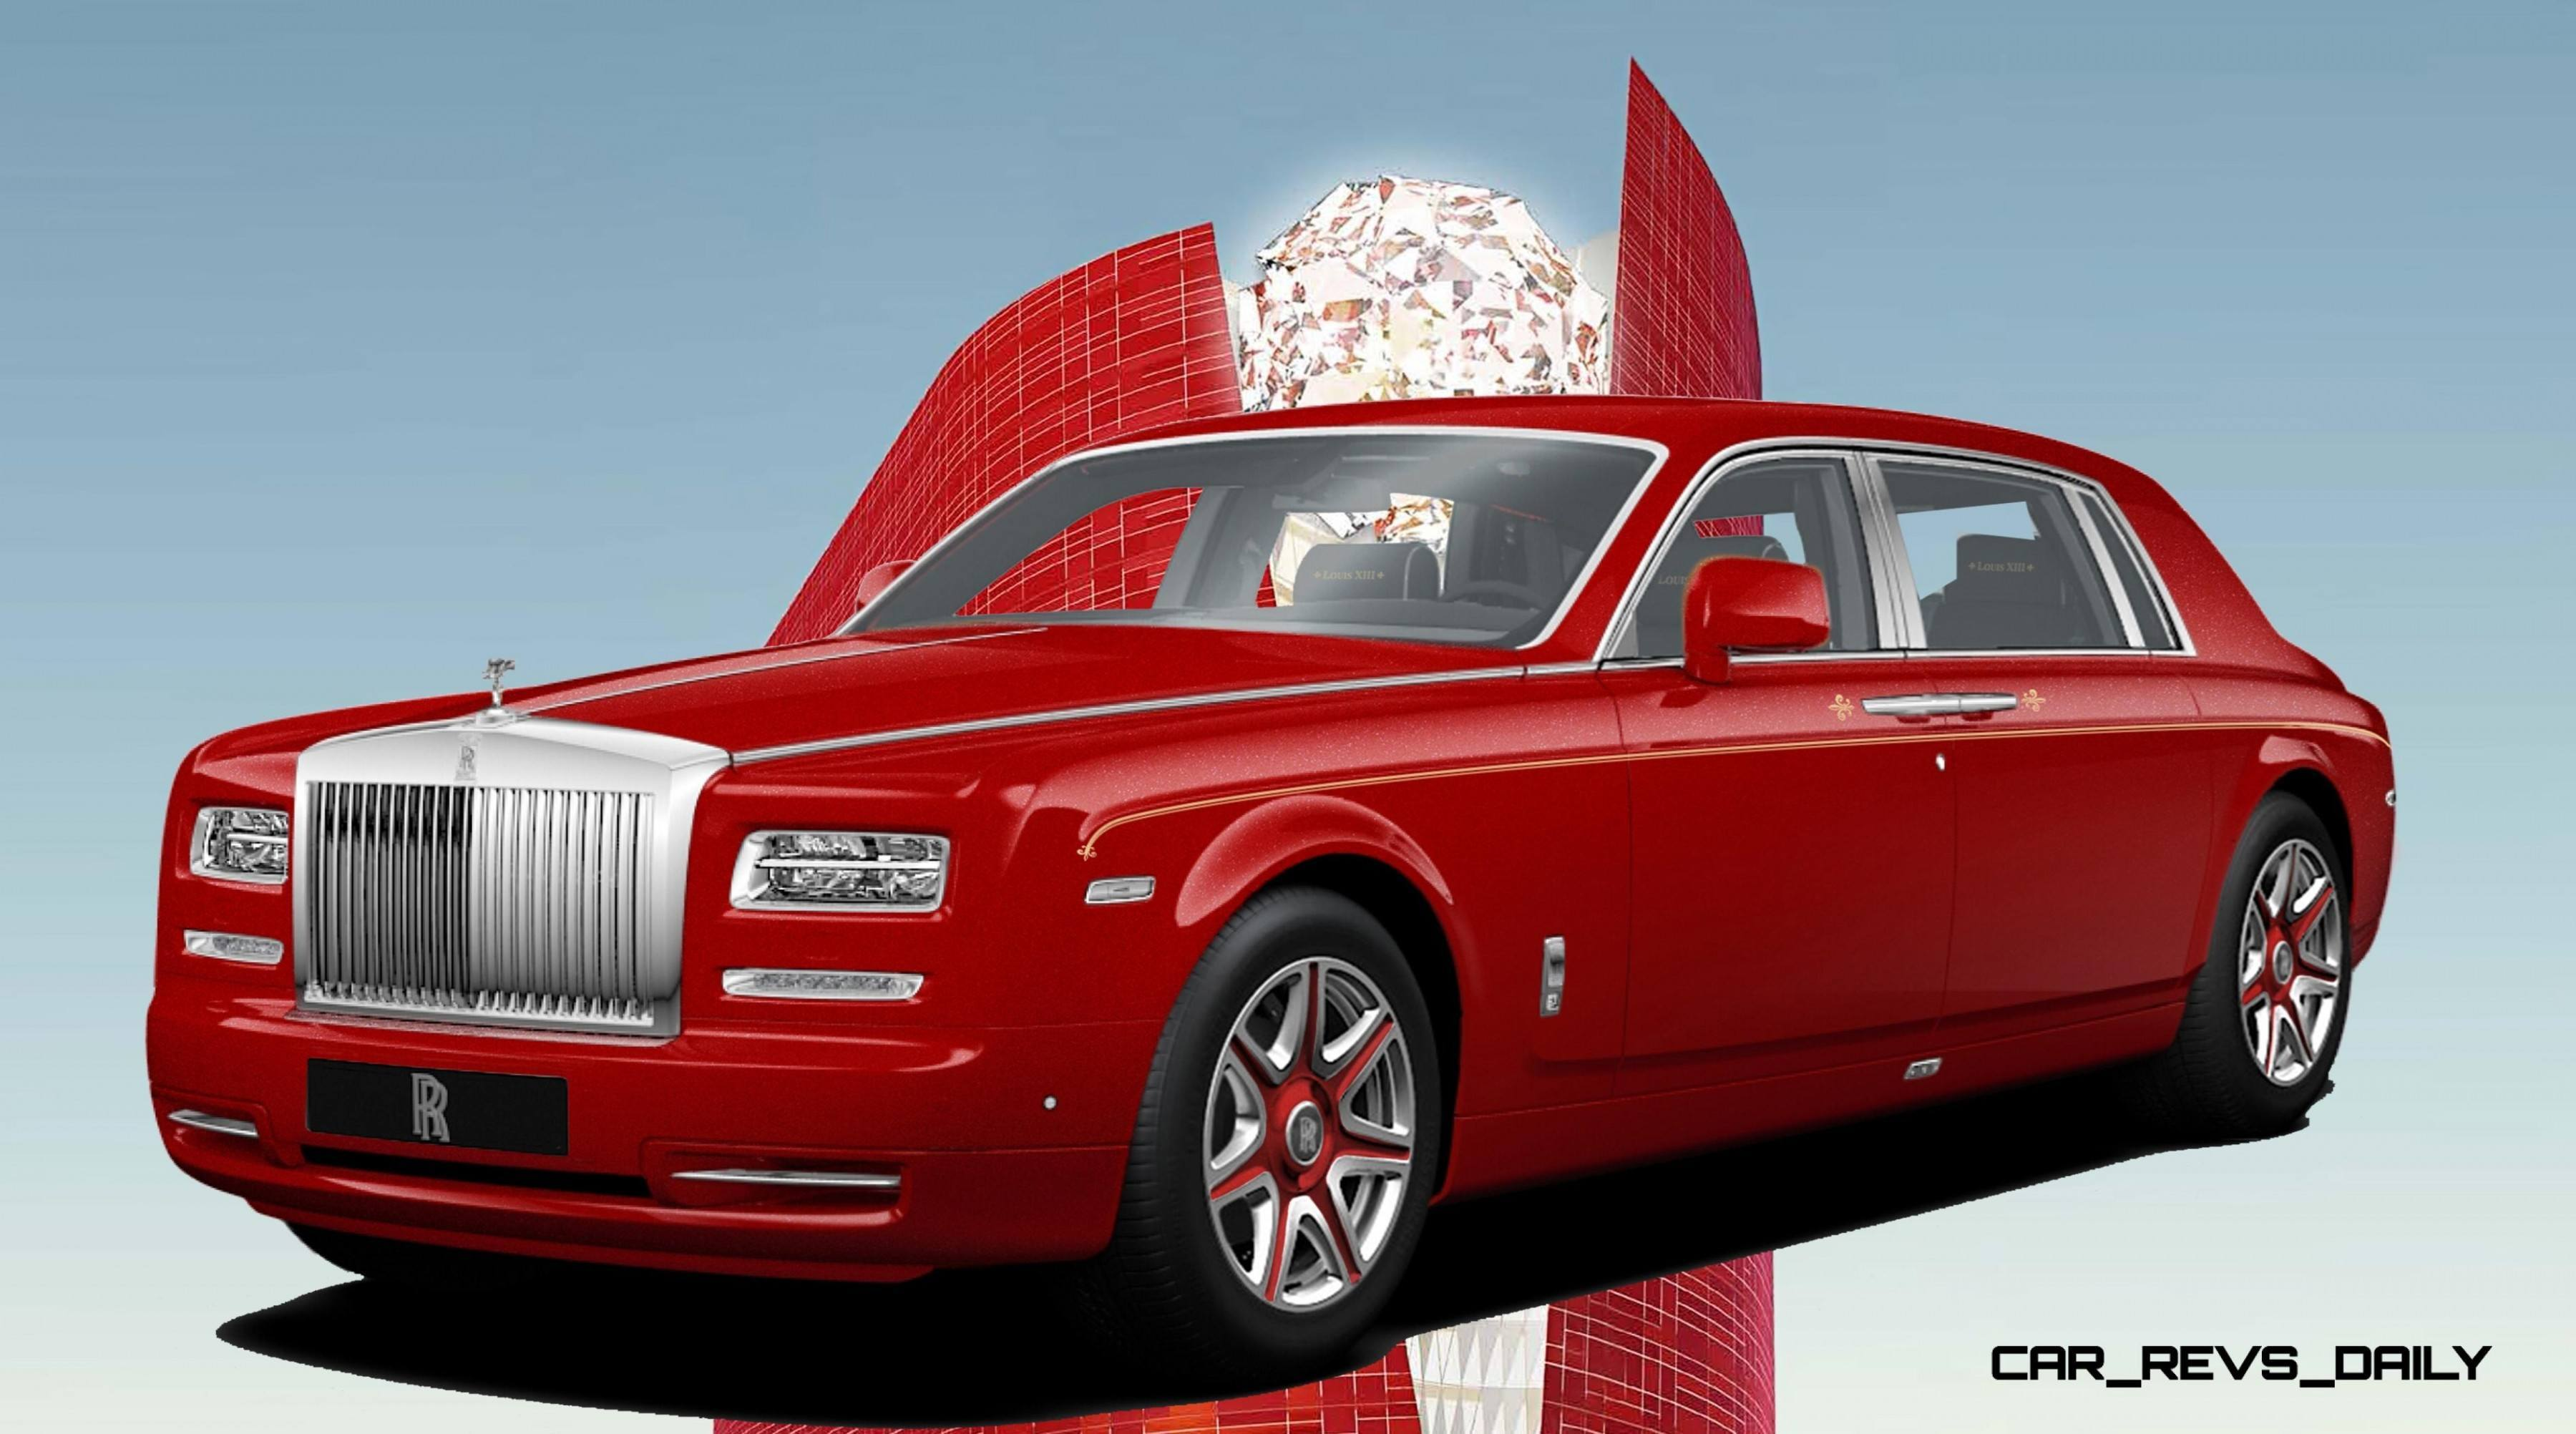 Rolls Royce Lands Largest Ever Order For 30 Phantoms From